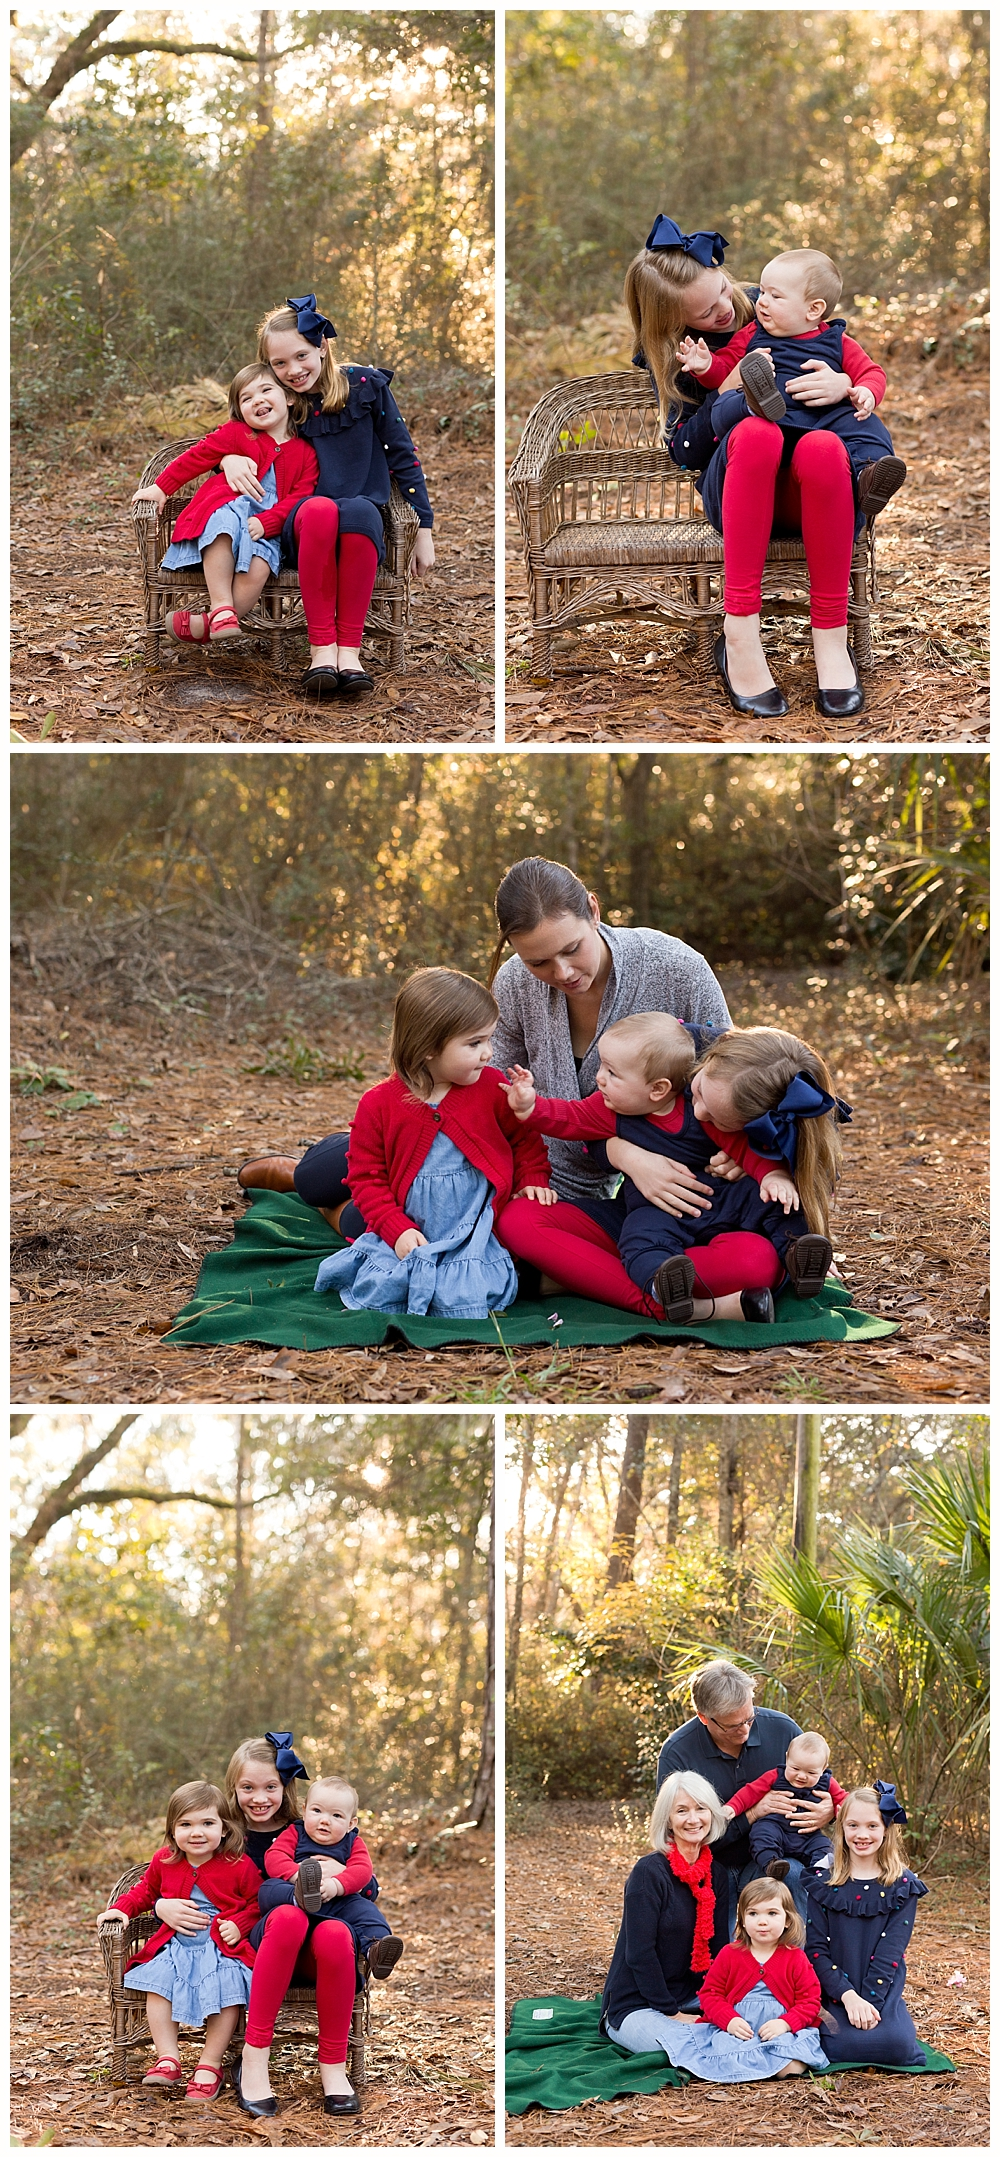 Ocean Springs child and family photographer - outdoor family pictures at 12 Oaks